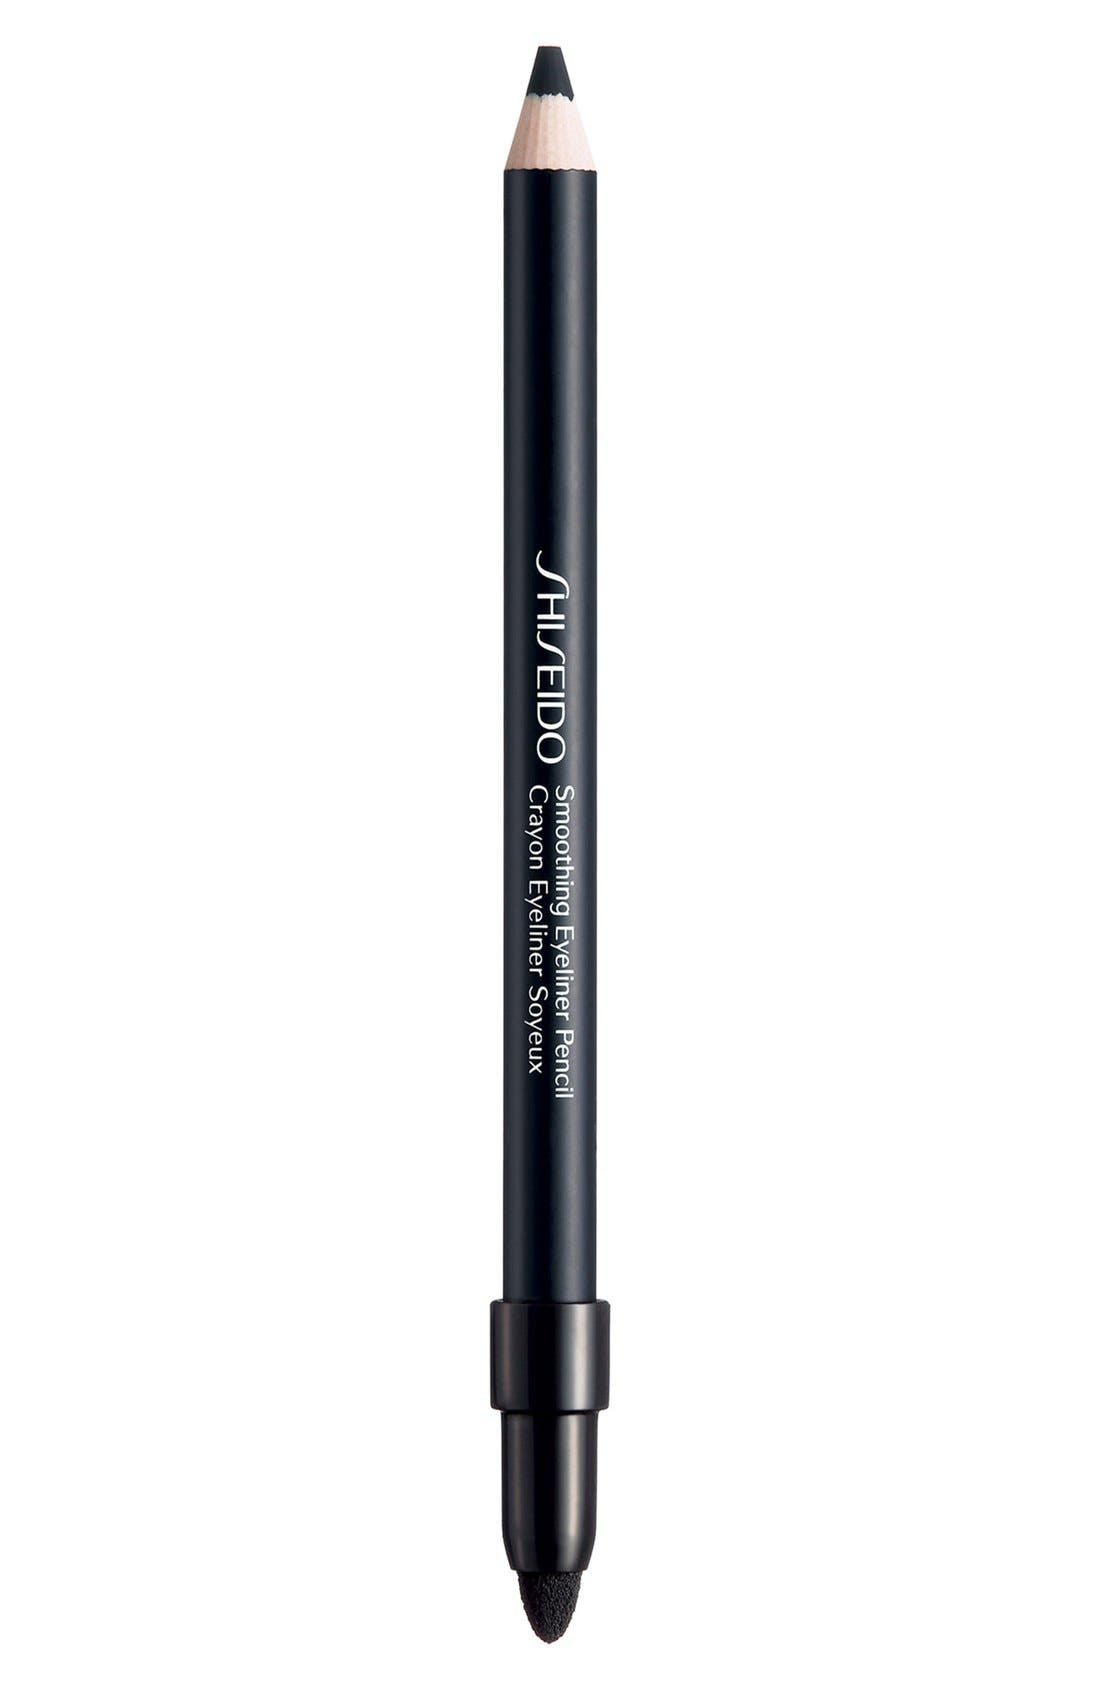 'The Makeup' Smoothing Eyeliner Pencil,                         Main,                         color, 001